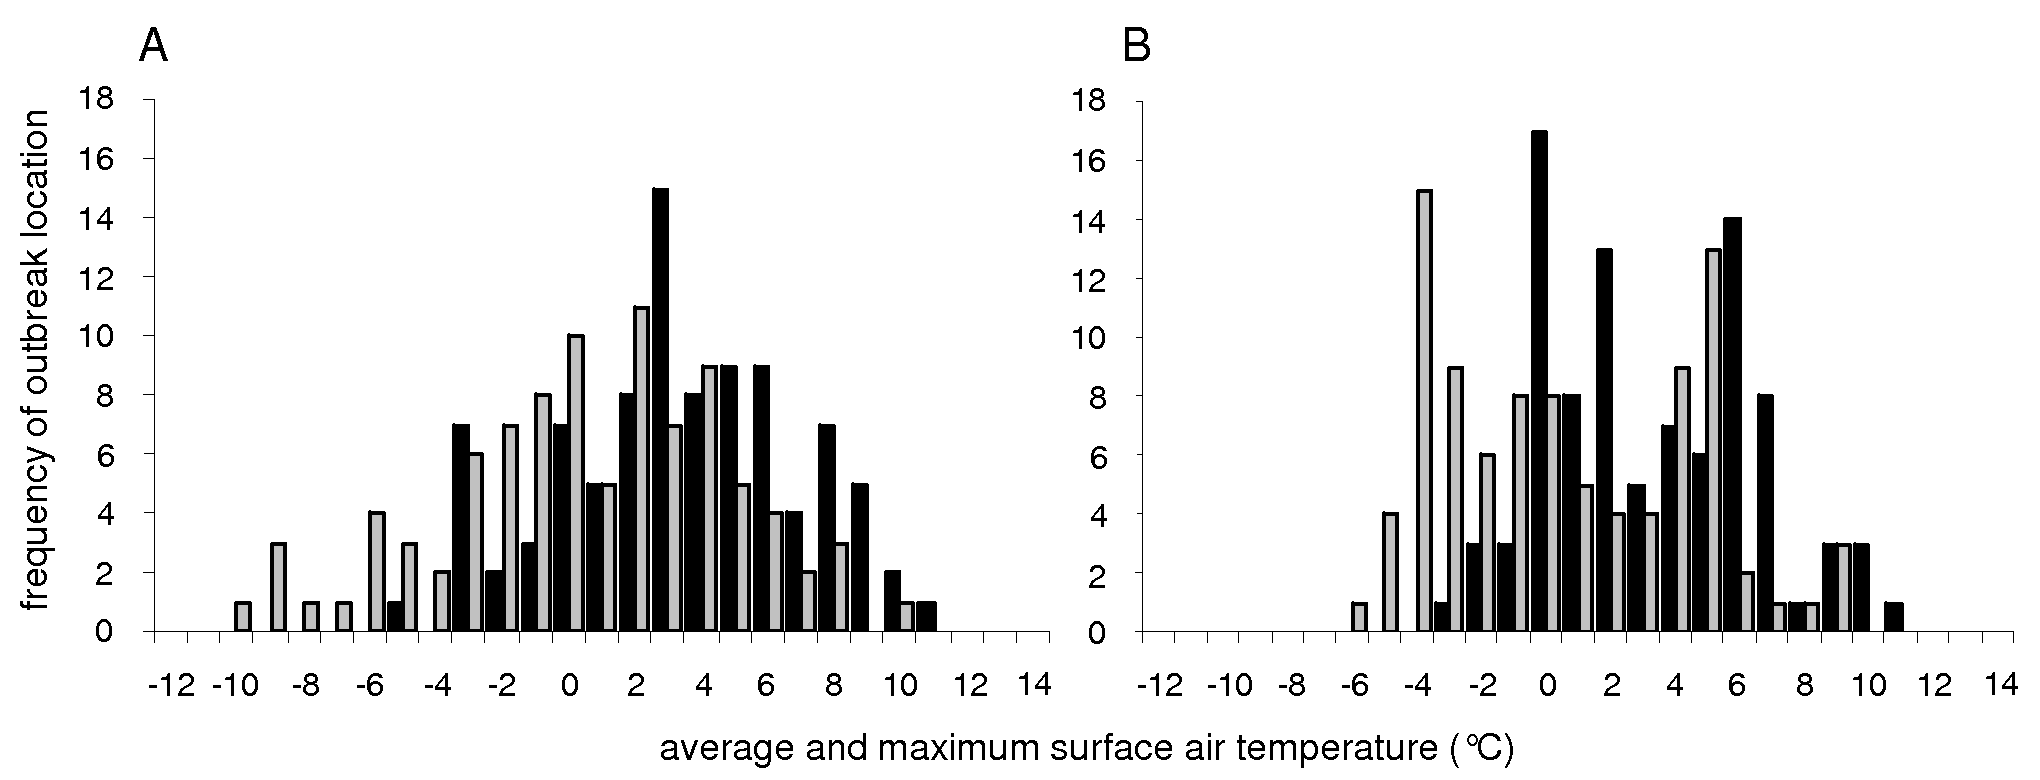 Surface air temperatures at locations of maximum mallard counts.